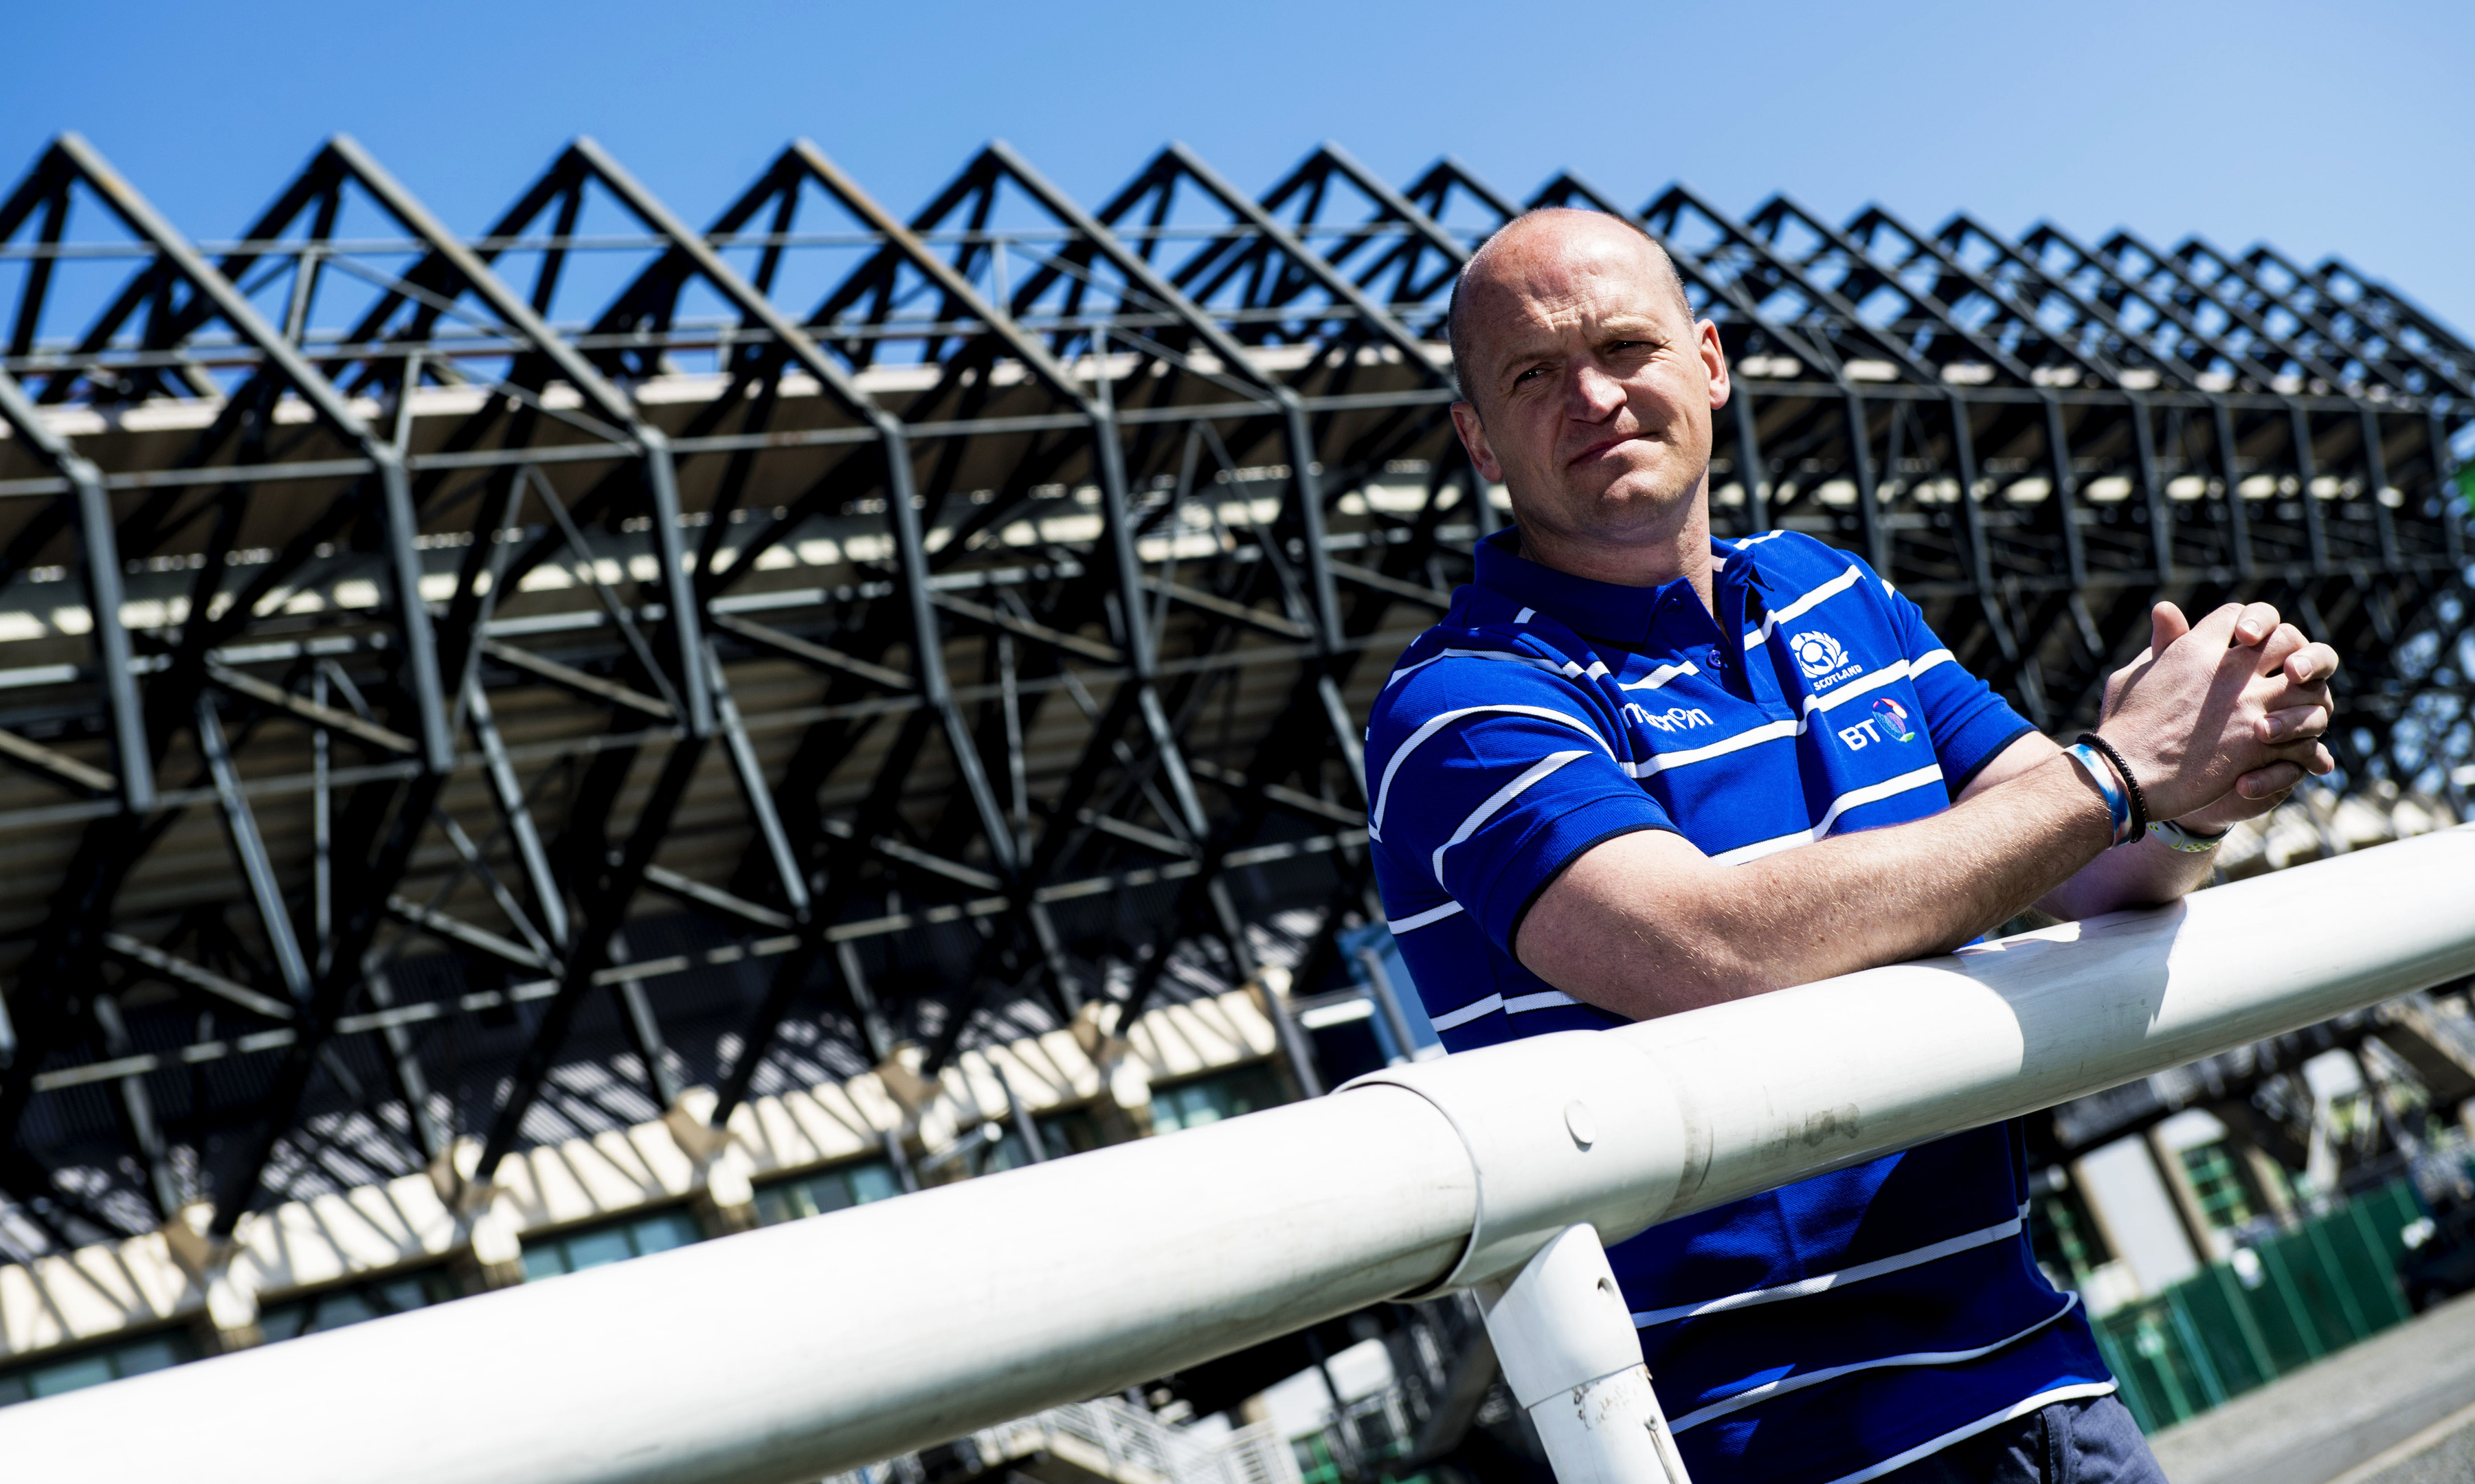 Gregor Townsend would be happy with the Wallabies as first round opponents in the Rugby World Cup in Japan in 2019.